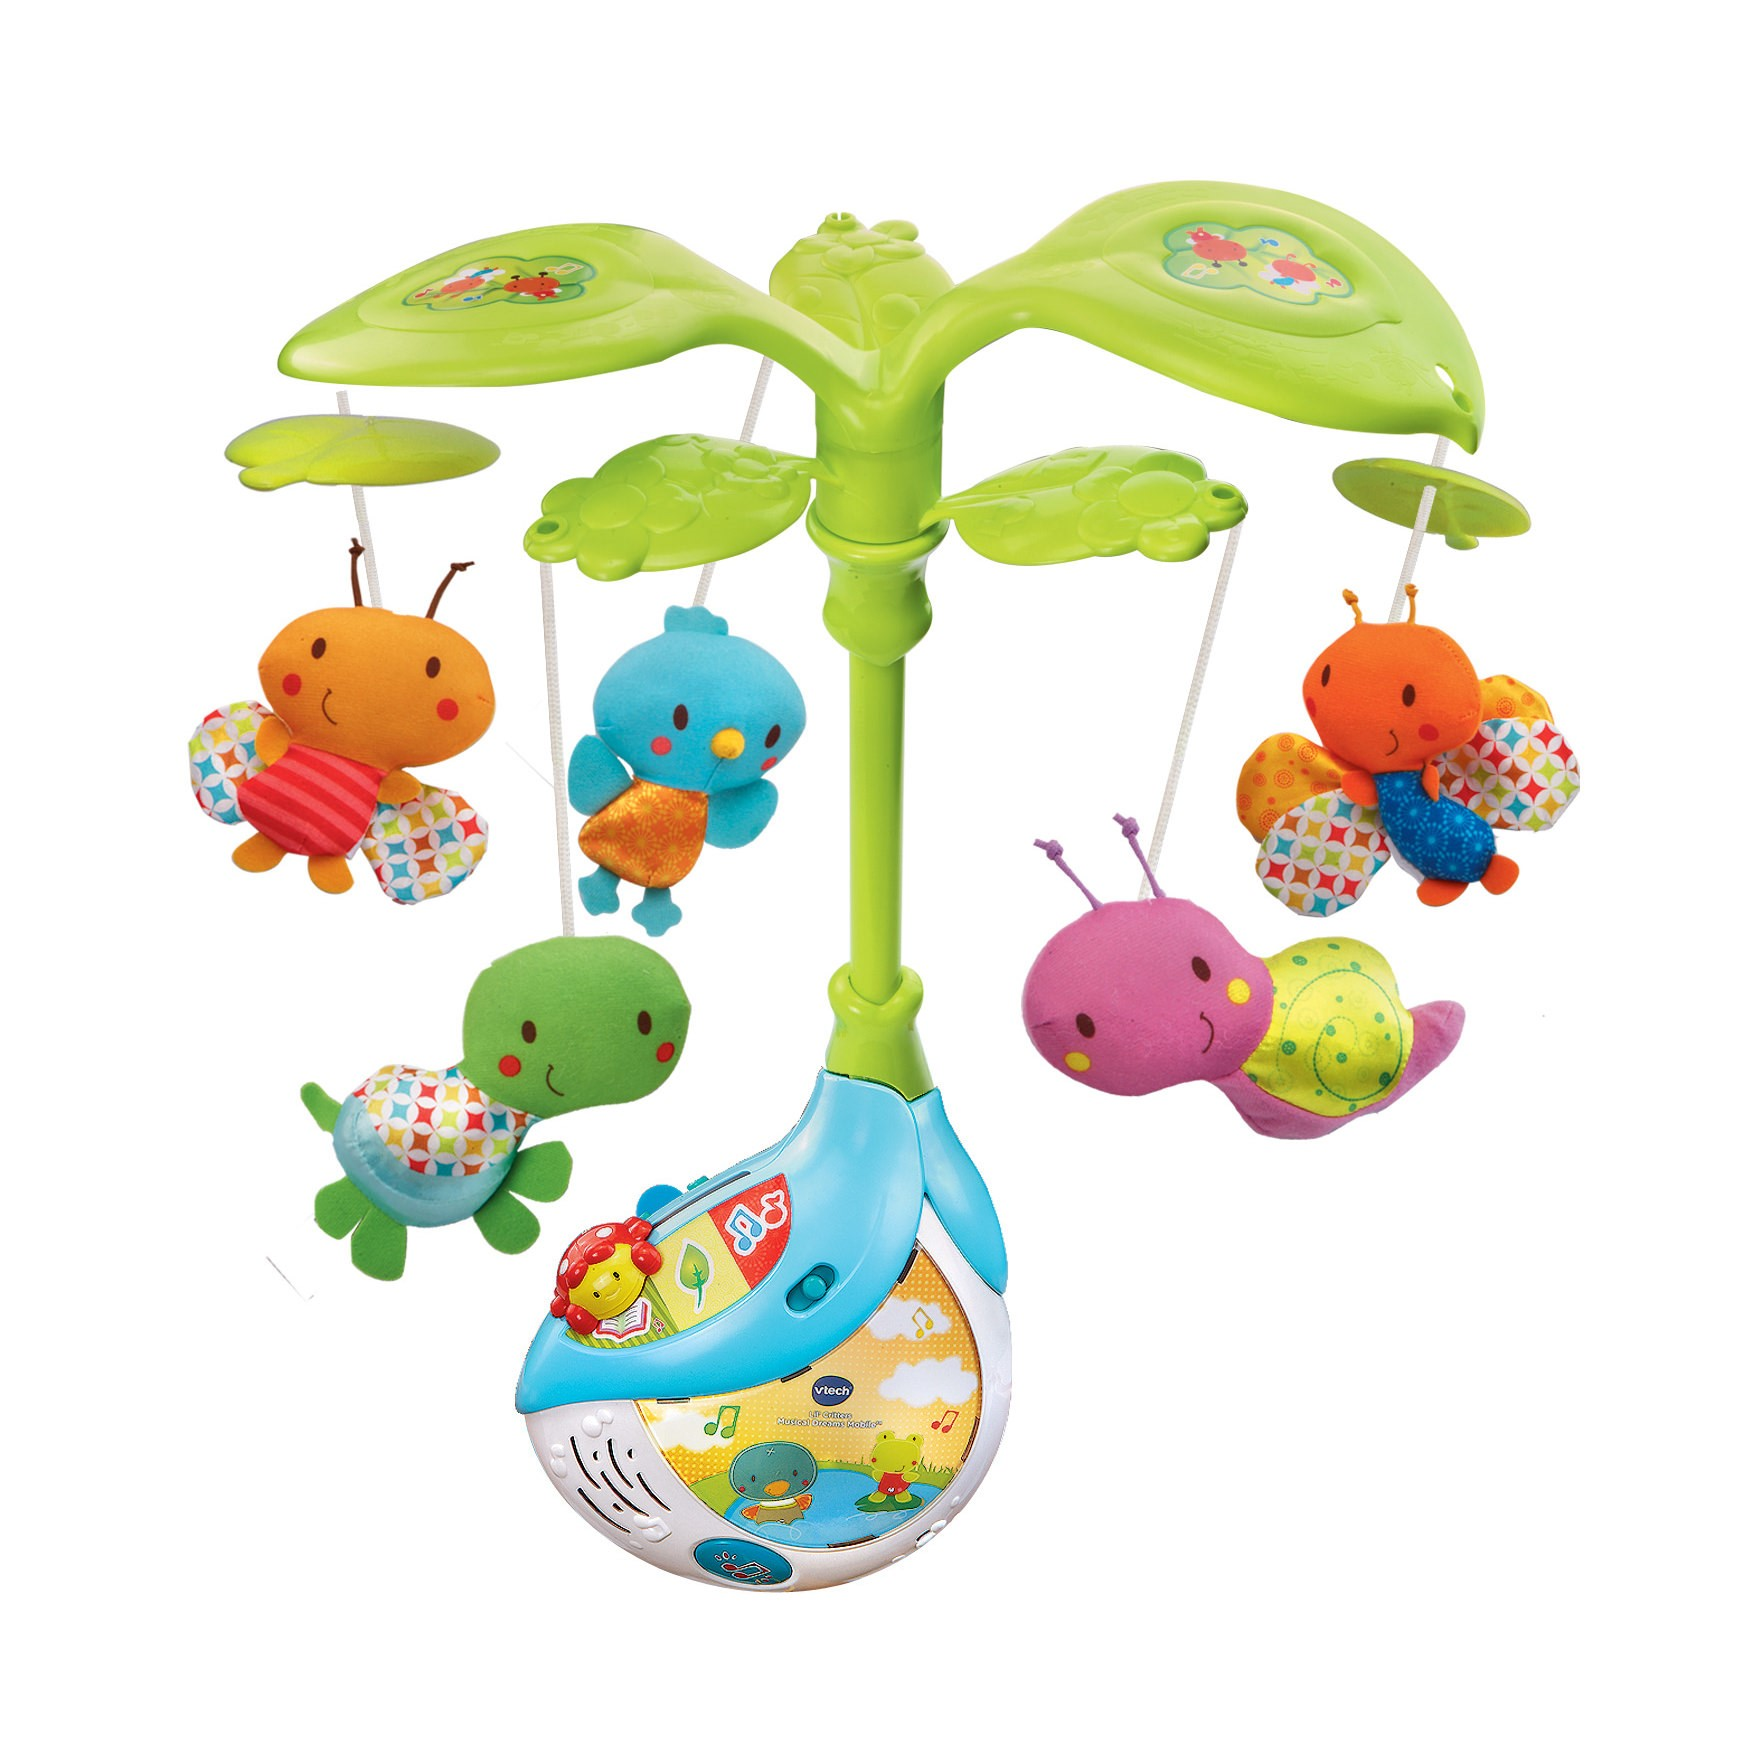 Lil' Critters Musical Dreams Mobile by VTech